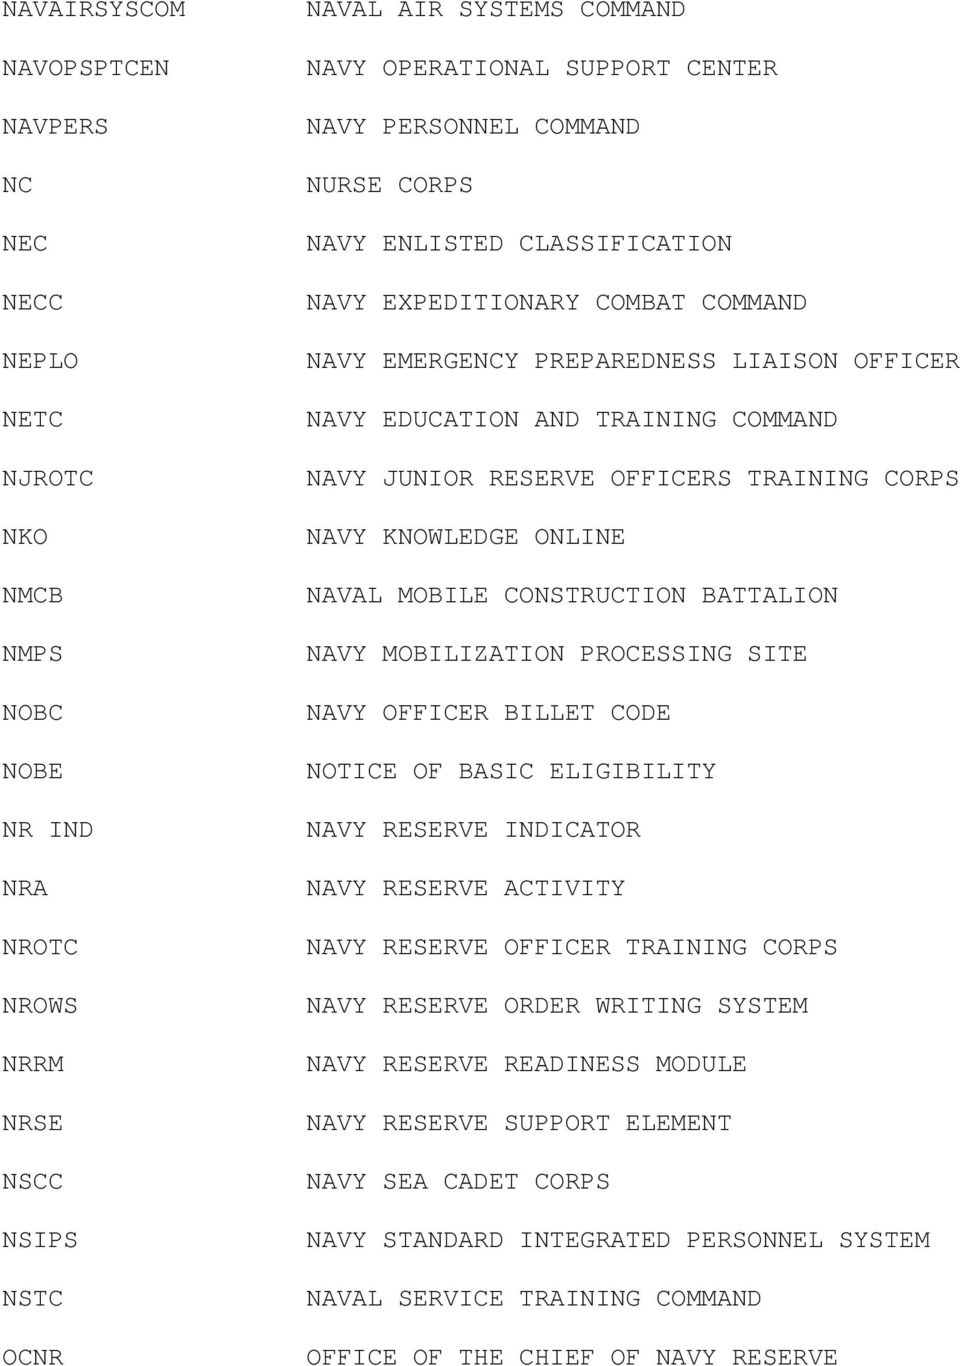 navy order writing system Navy reserve order writing system nps non-prior service someone without any previous military experience nrc navy recruiting command main headquarters for navy recruiting, located in millington, tennessee nrotc naval reserve officers training corps a college scholarship program used to recruit future.